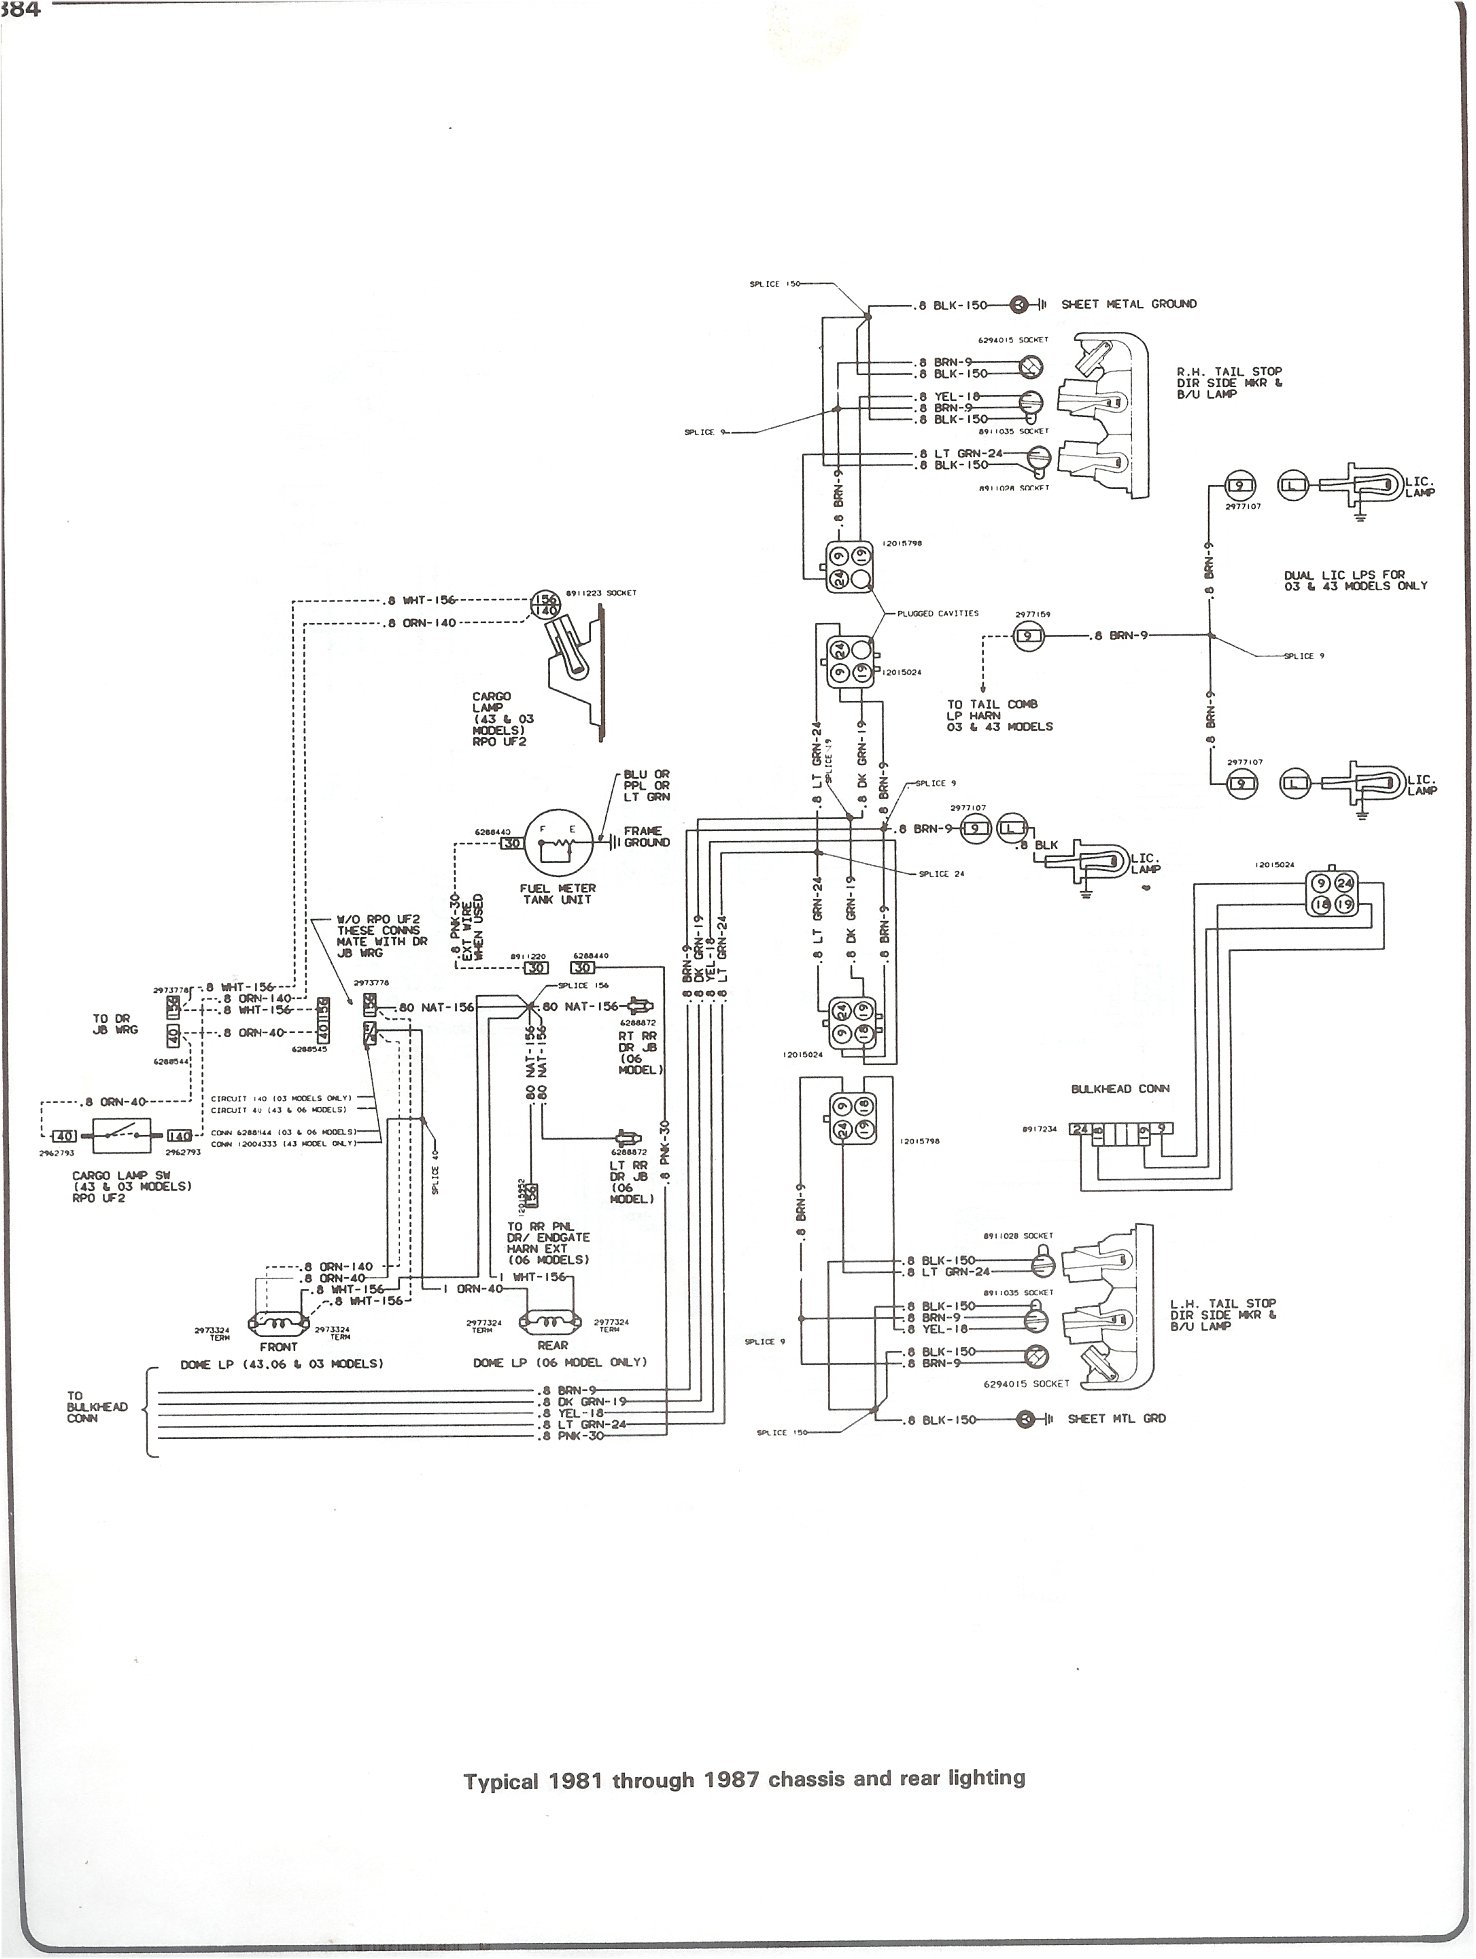 81 87_chass_rr_light complete 73 87 wiring diagrams 73-87 Chevy Wiring Diagrams Site at honlapkeszites.co